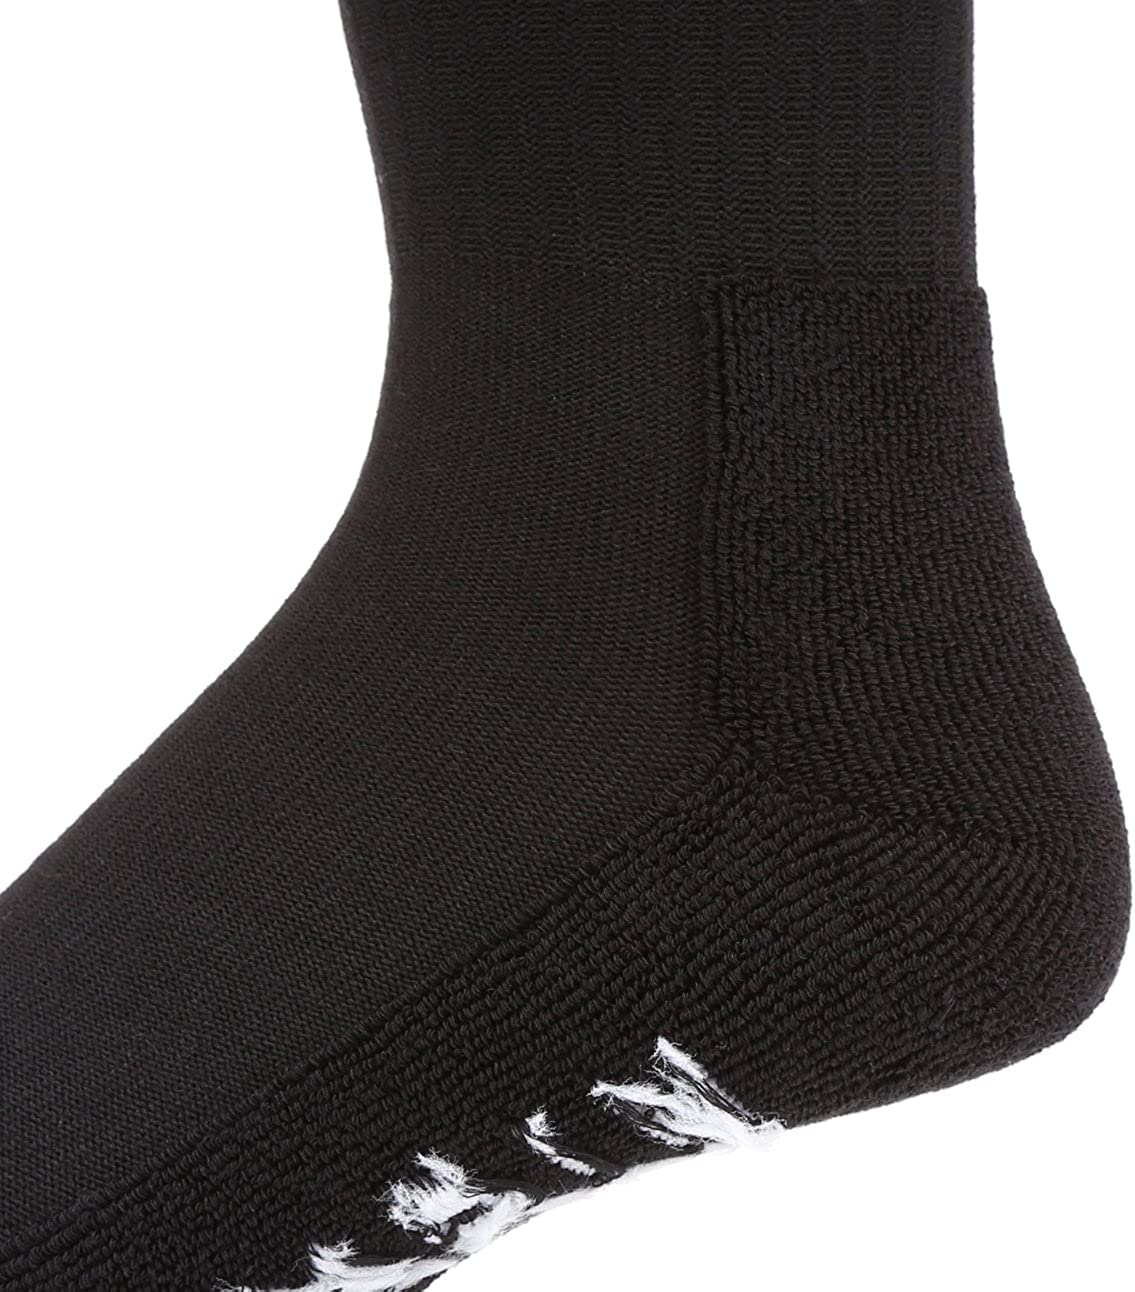 Arch Support MIRMARU Men/'s Performance Moisture Wicking Outdoor Athletic Sports Crew Socks with Cushioned Sole